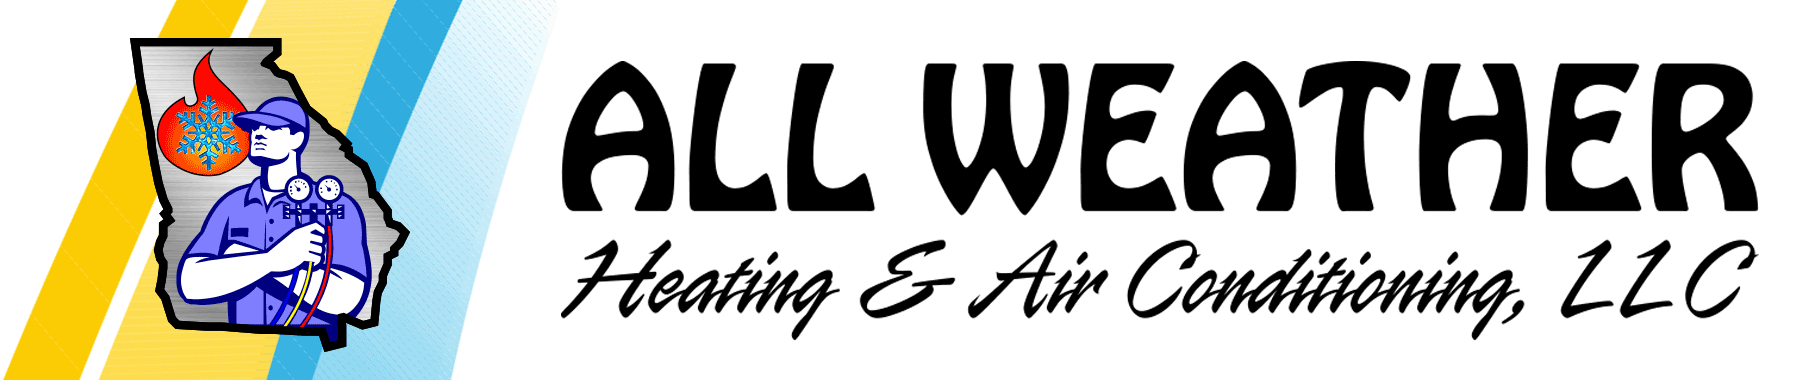 All Weather Heating & Air Conditioning, LLC